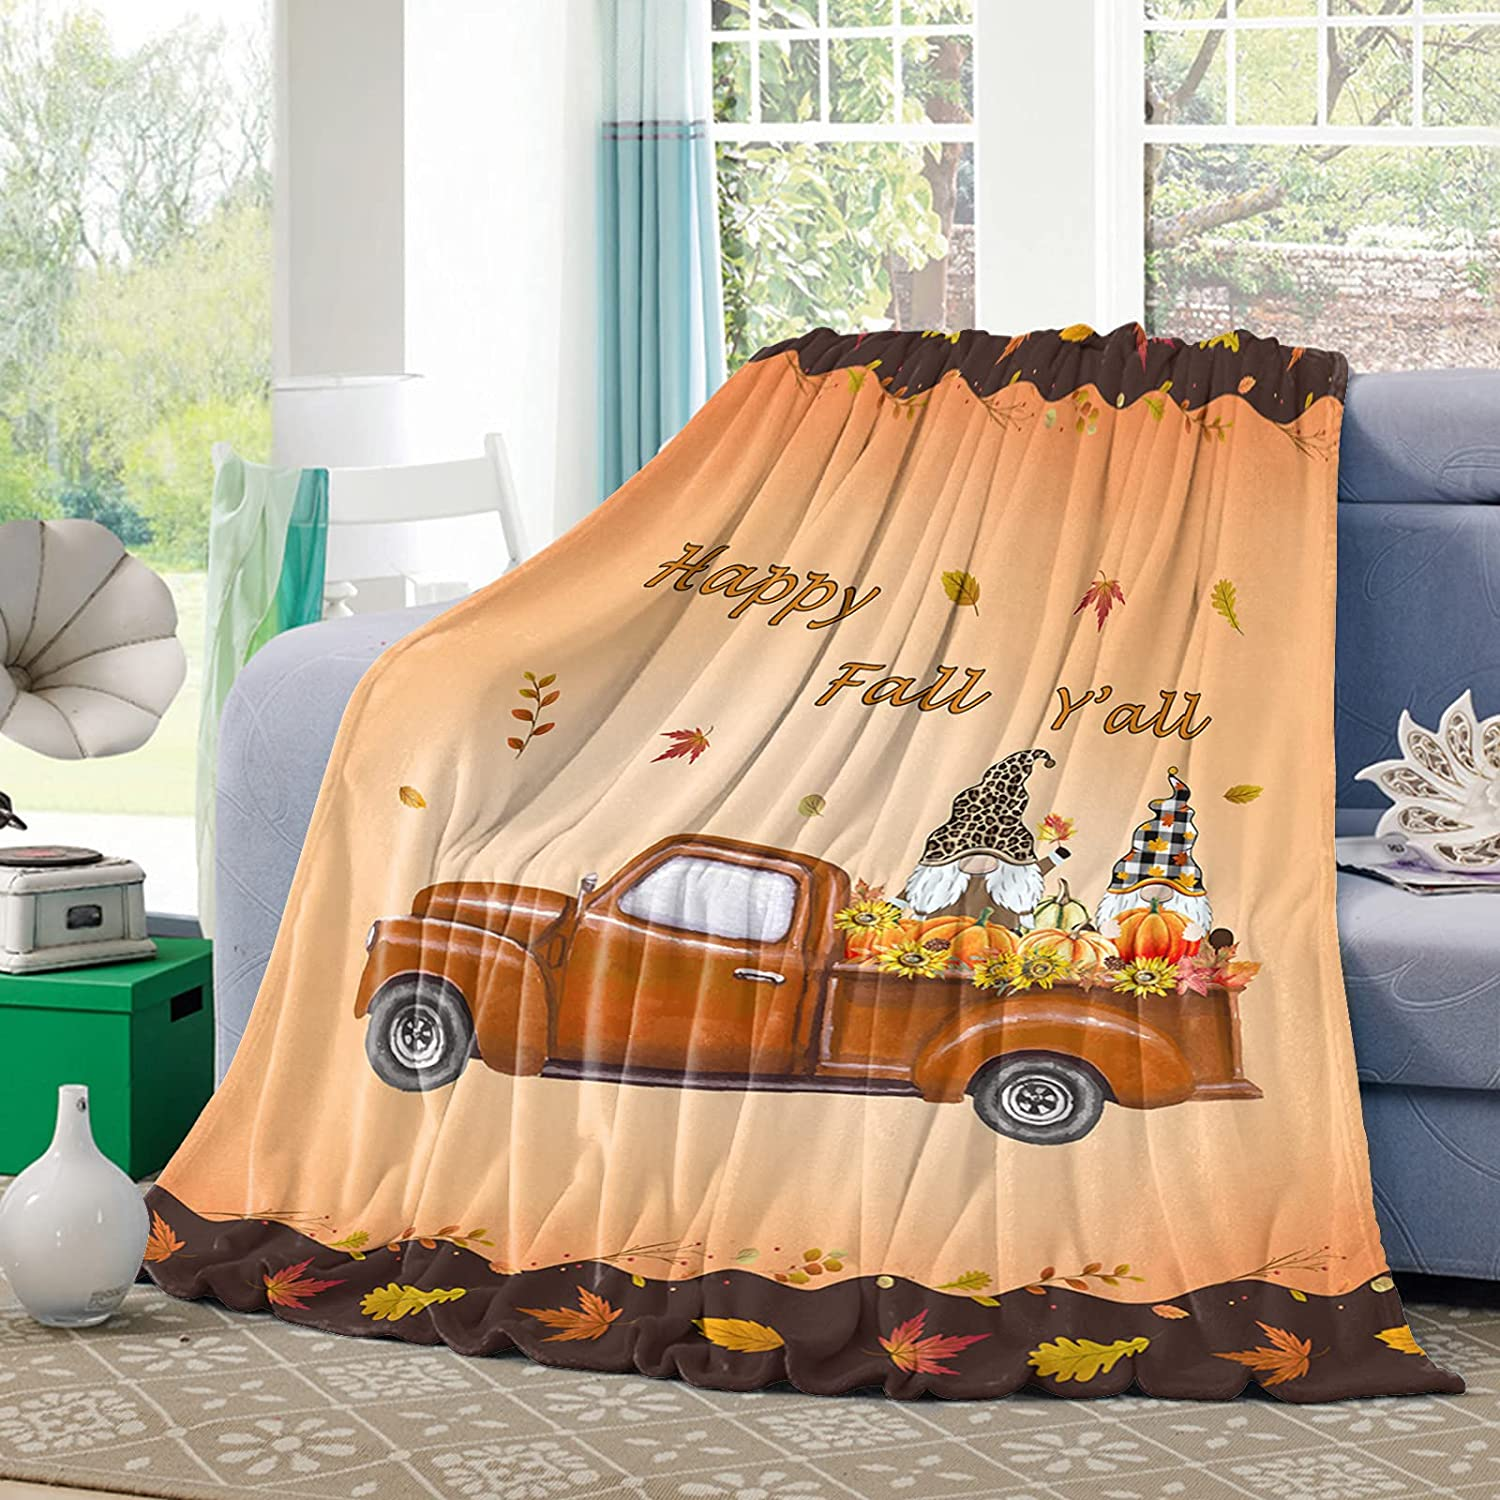 Flannel Discount mail order Fleece Throw Blanket Happy Sunf List price Fall Y'all Gnome Pumpkin